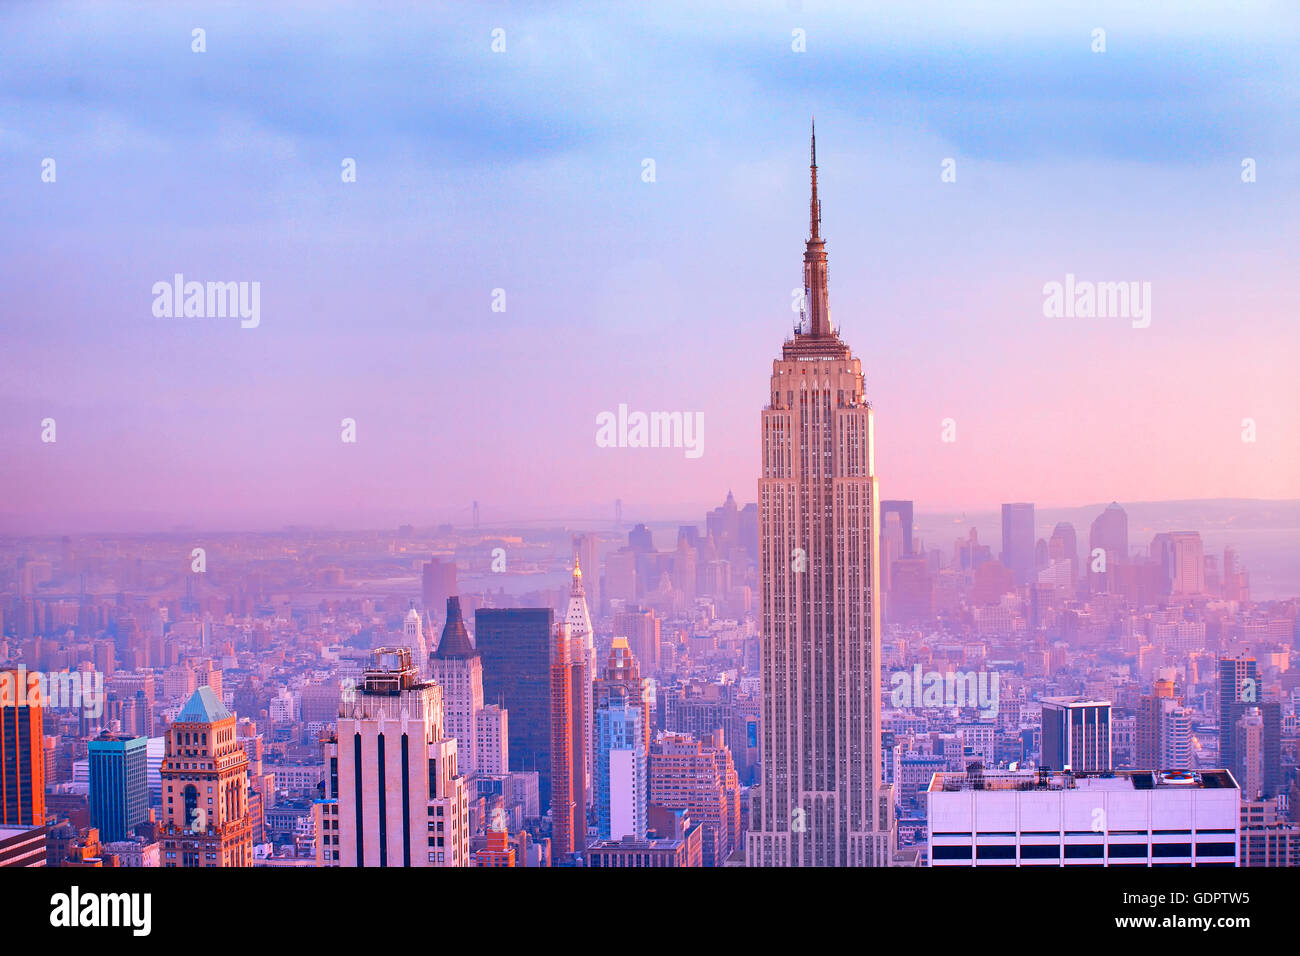 Skyline von Manhattan in New York city Stockbild